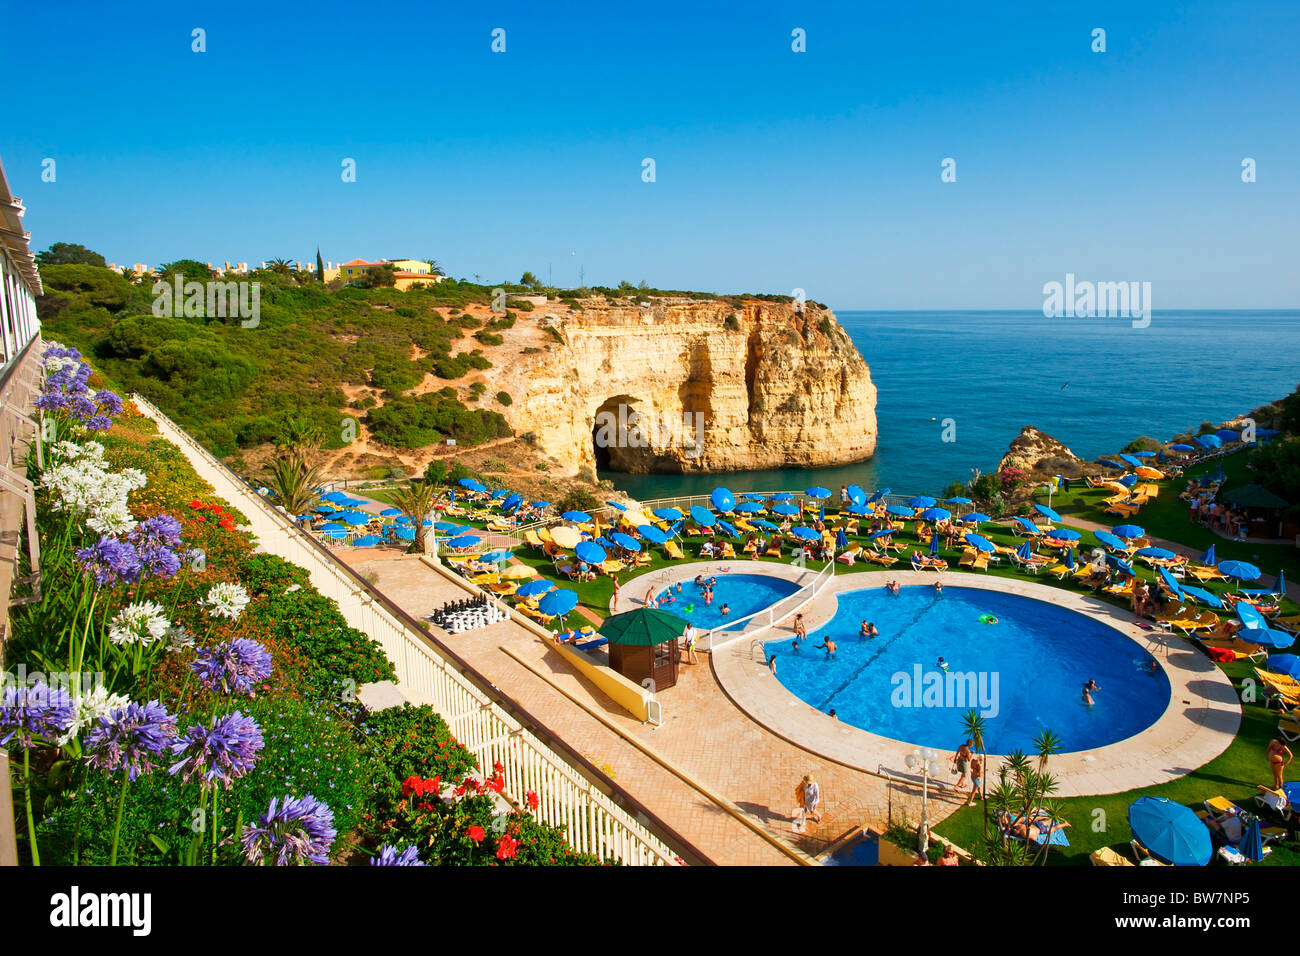 Tivoli Hotels In The Algarve Tivoli Hotel Stock Photos And Tivoli Hotel Stock Images Alamy